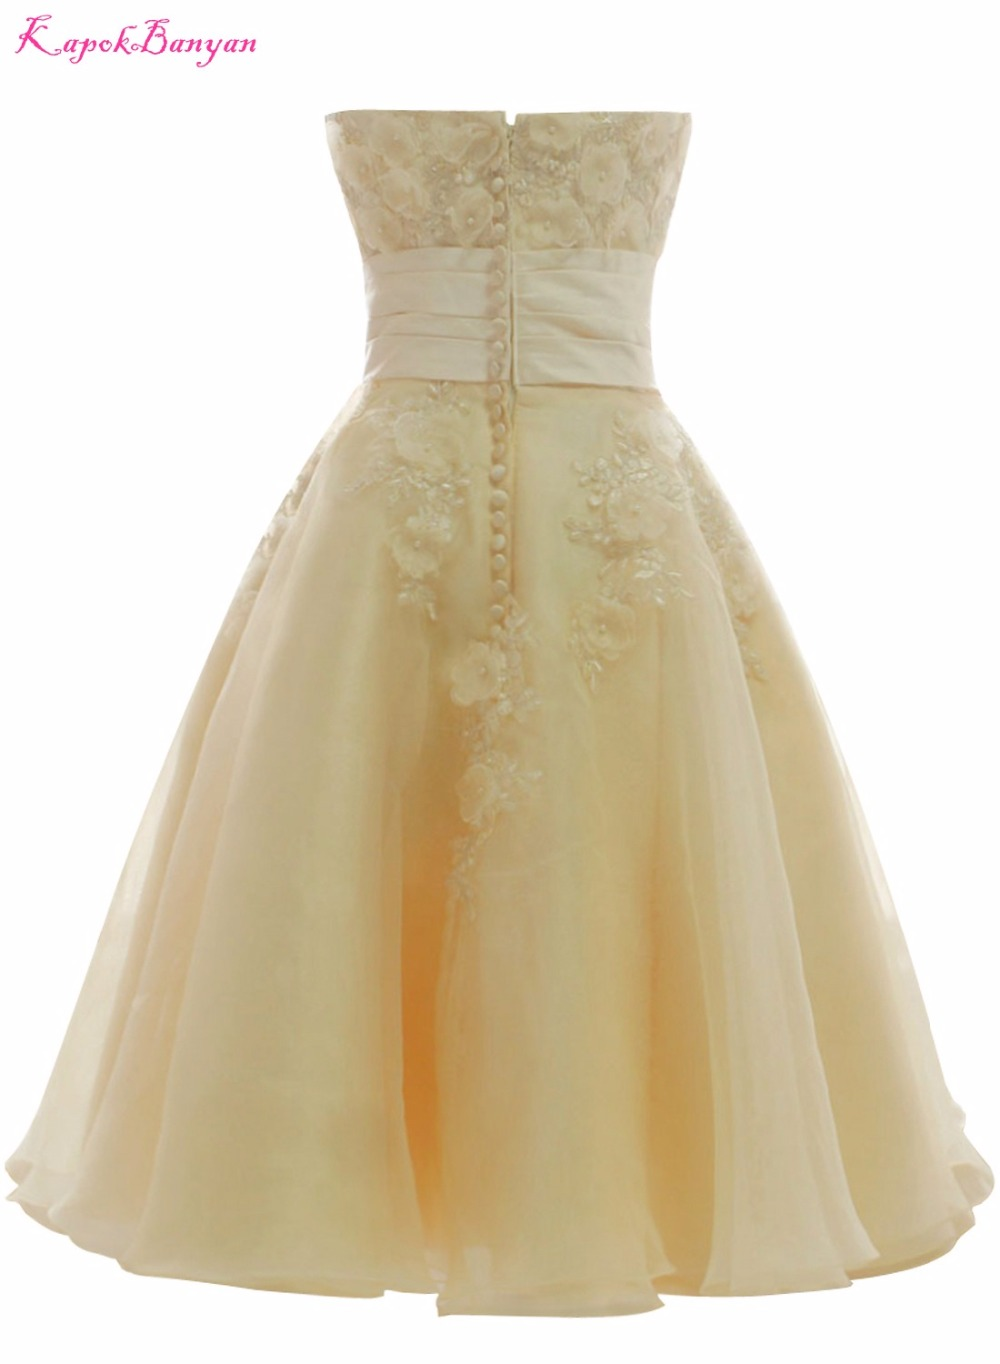 Bridalaffair Real Photo Light Yellow Lace Ball Gown Short Wedding Dresses 2017 Mid Calf Strapless Bridal Vestido De Noiva In From